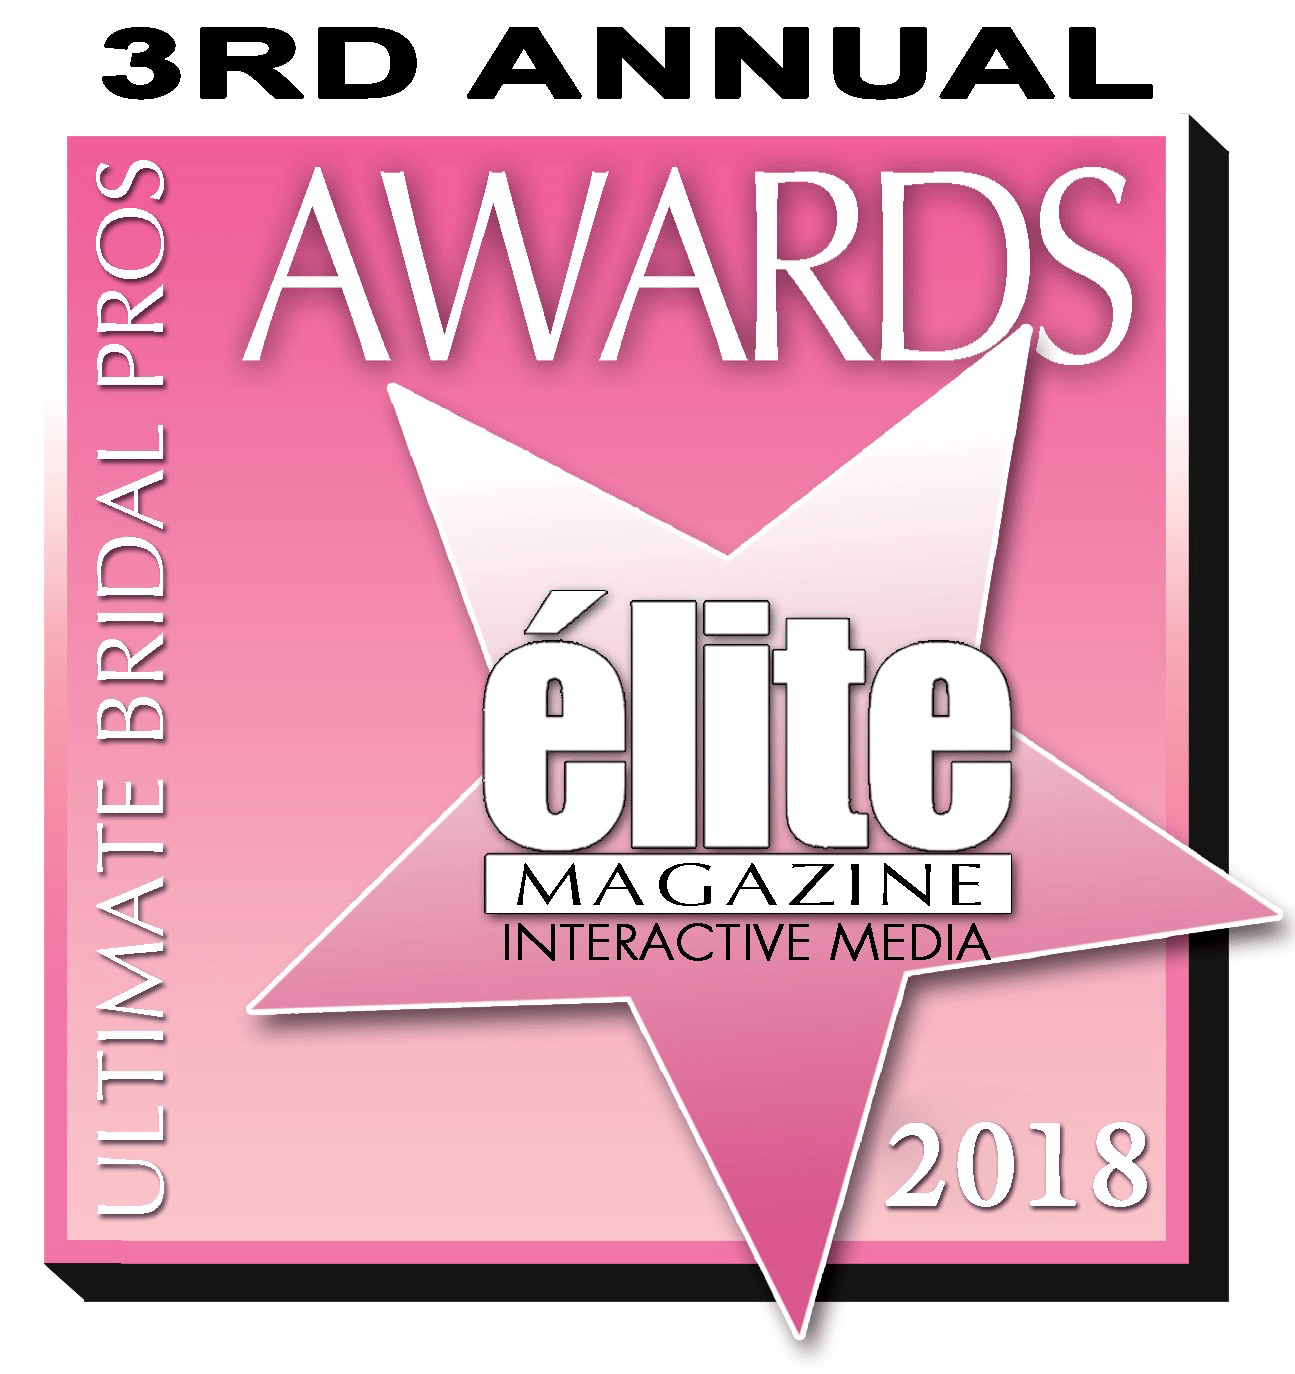 2018 Elite Magazine Interactive Media